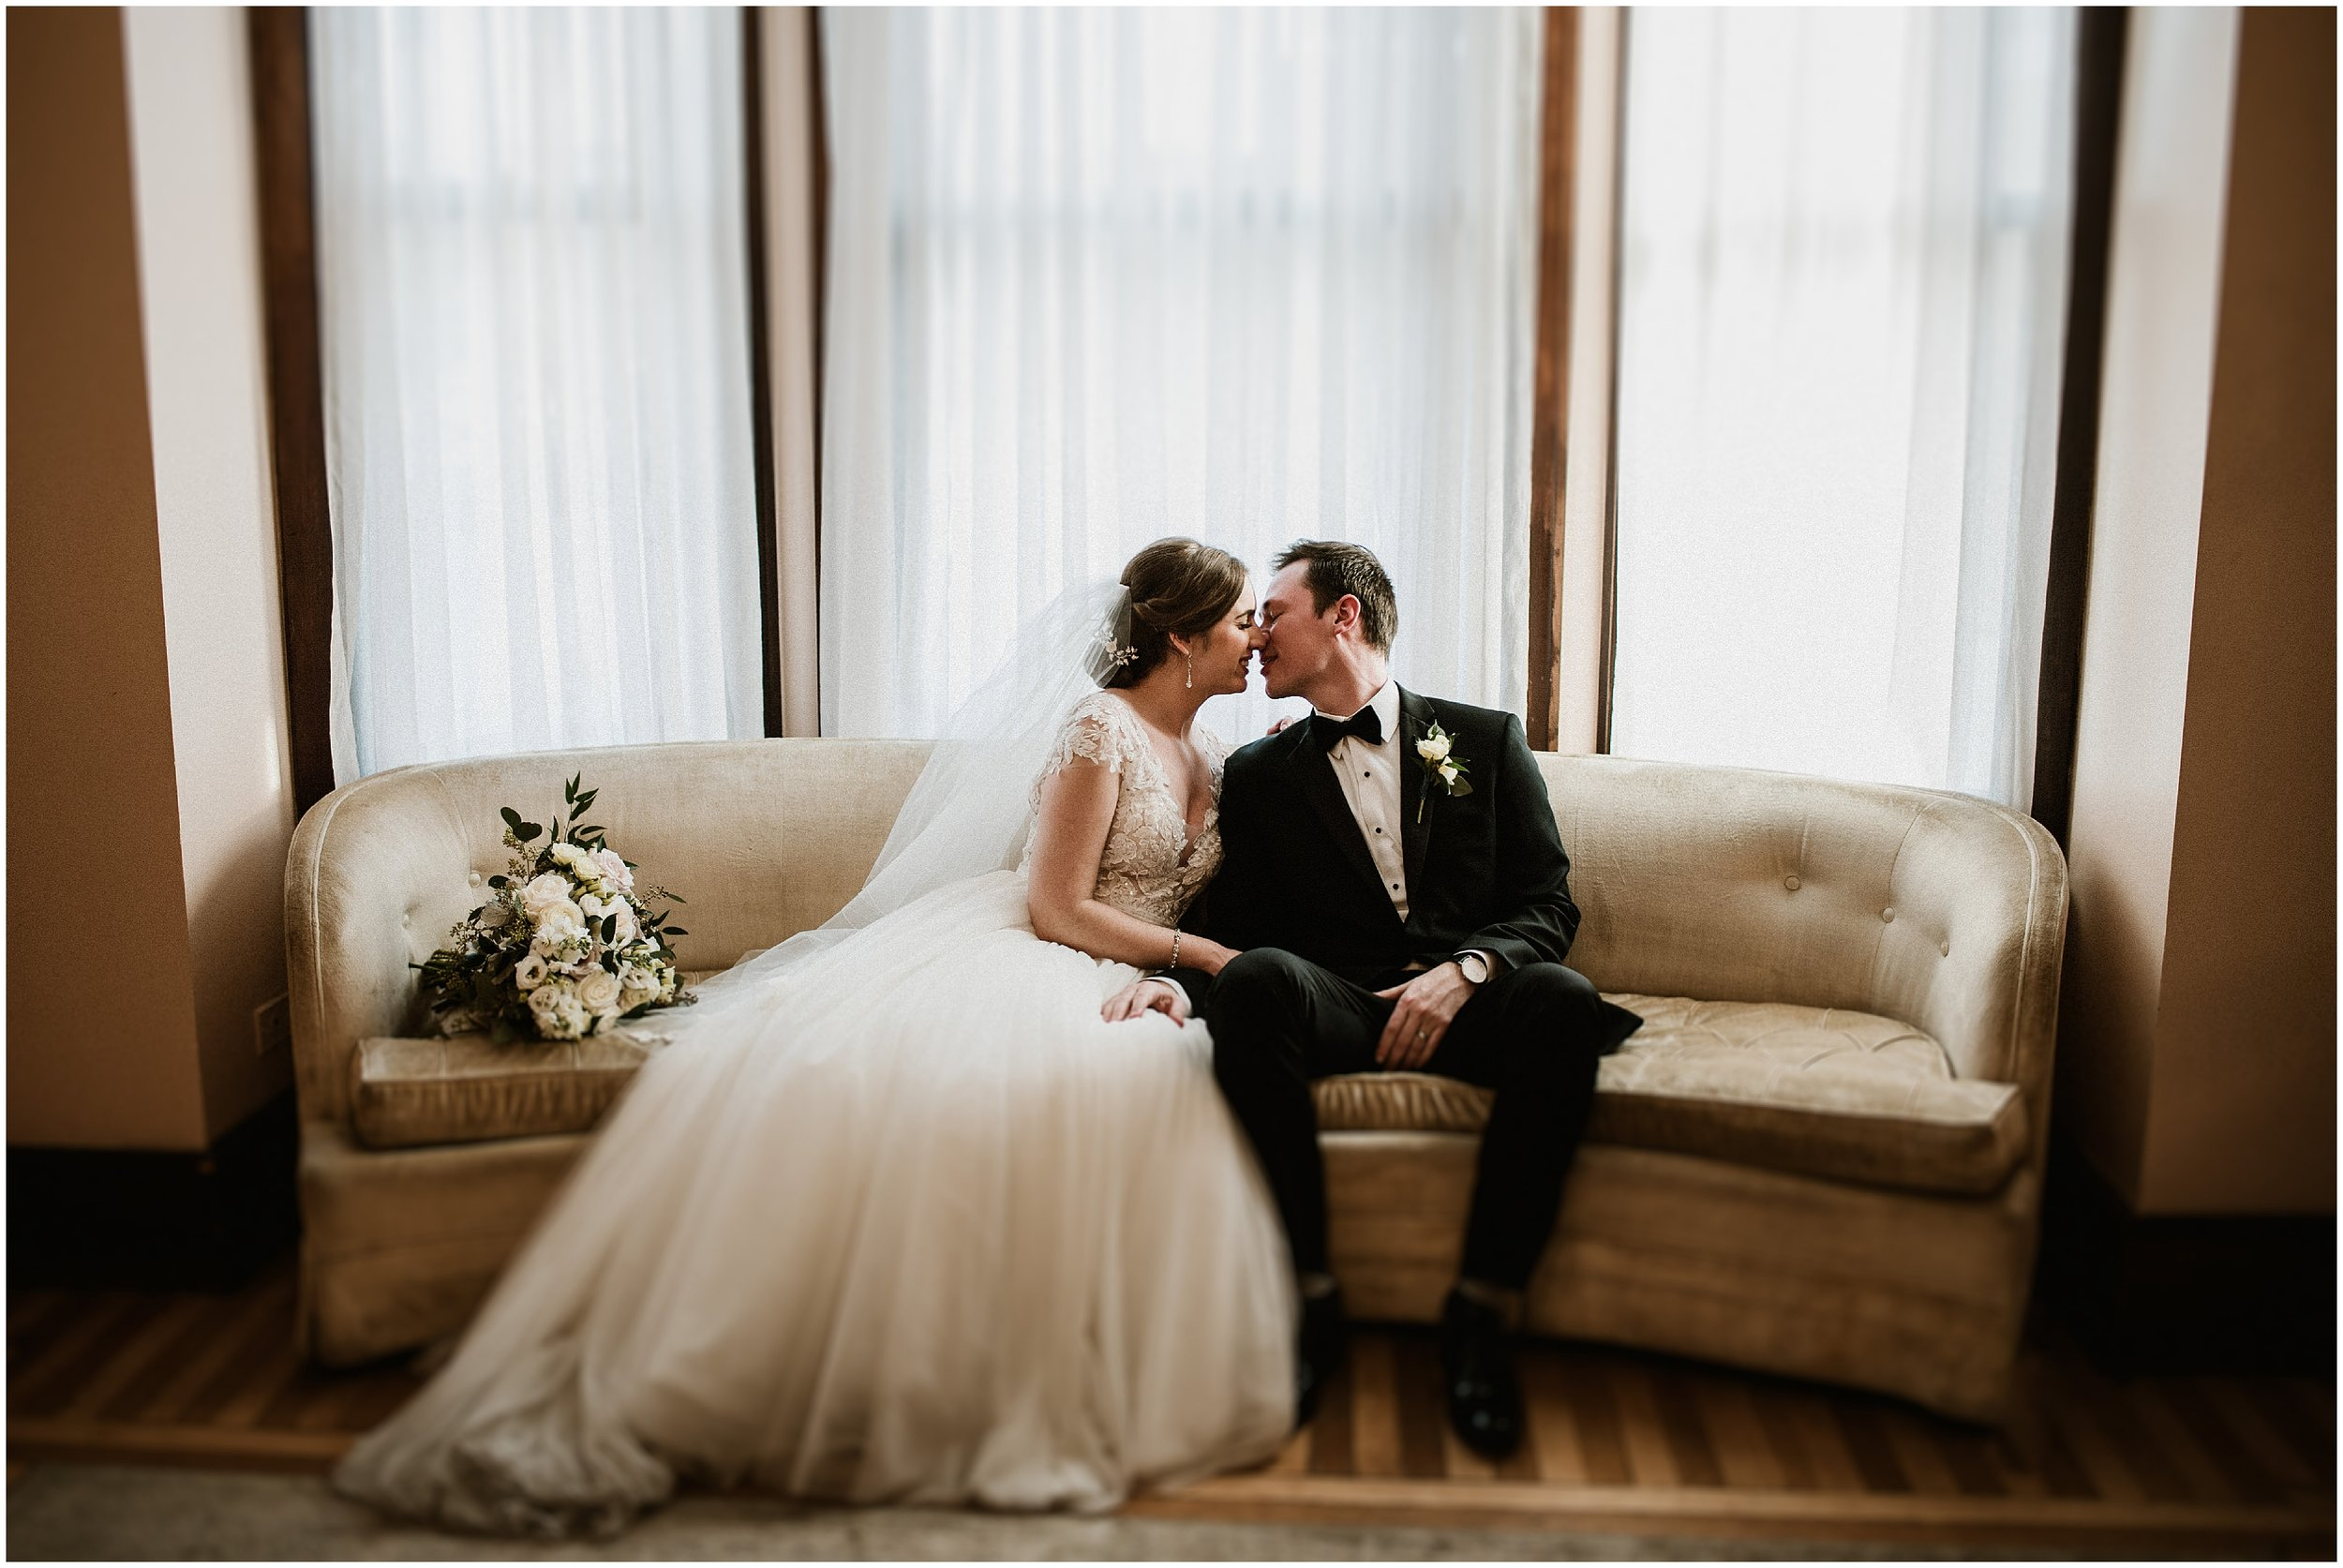 Candace Sims Photography | Brittany and Andrew | Vintage Wedding | The Haight, Elgin IL